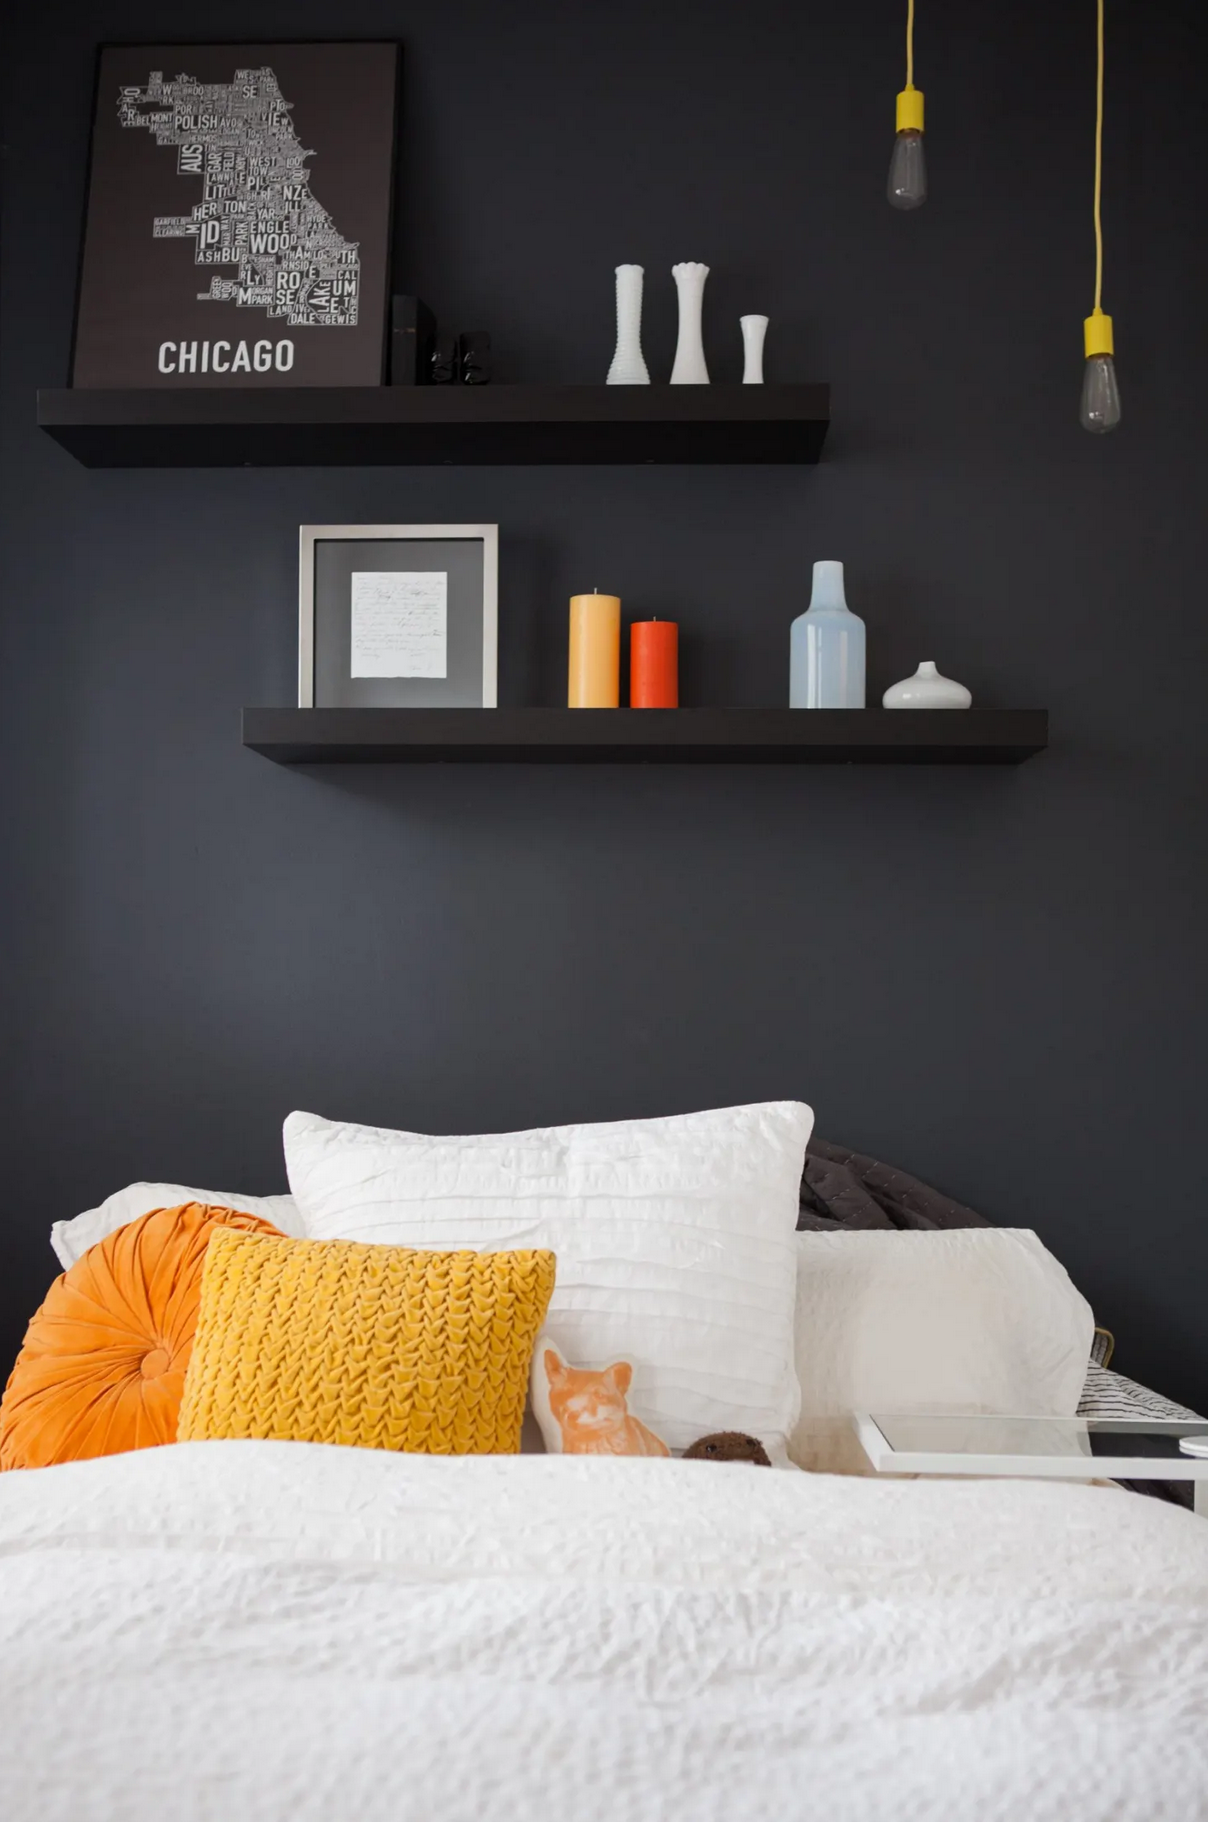 Best Navy and Mustard Bedroom Ideas - Image via Apartment Therapy, photo by Brittany Purlee, wall color by Behr in shade 'Deep Space'